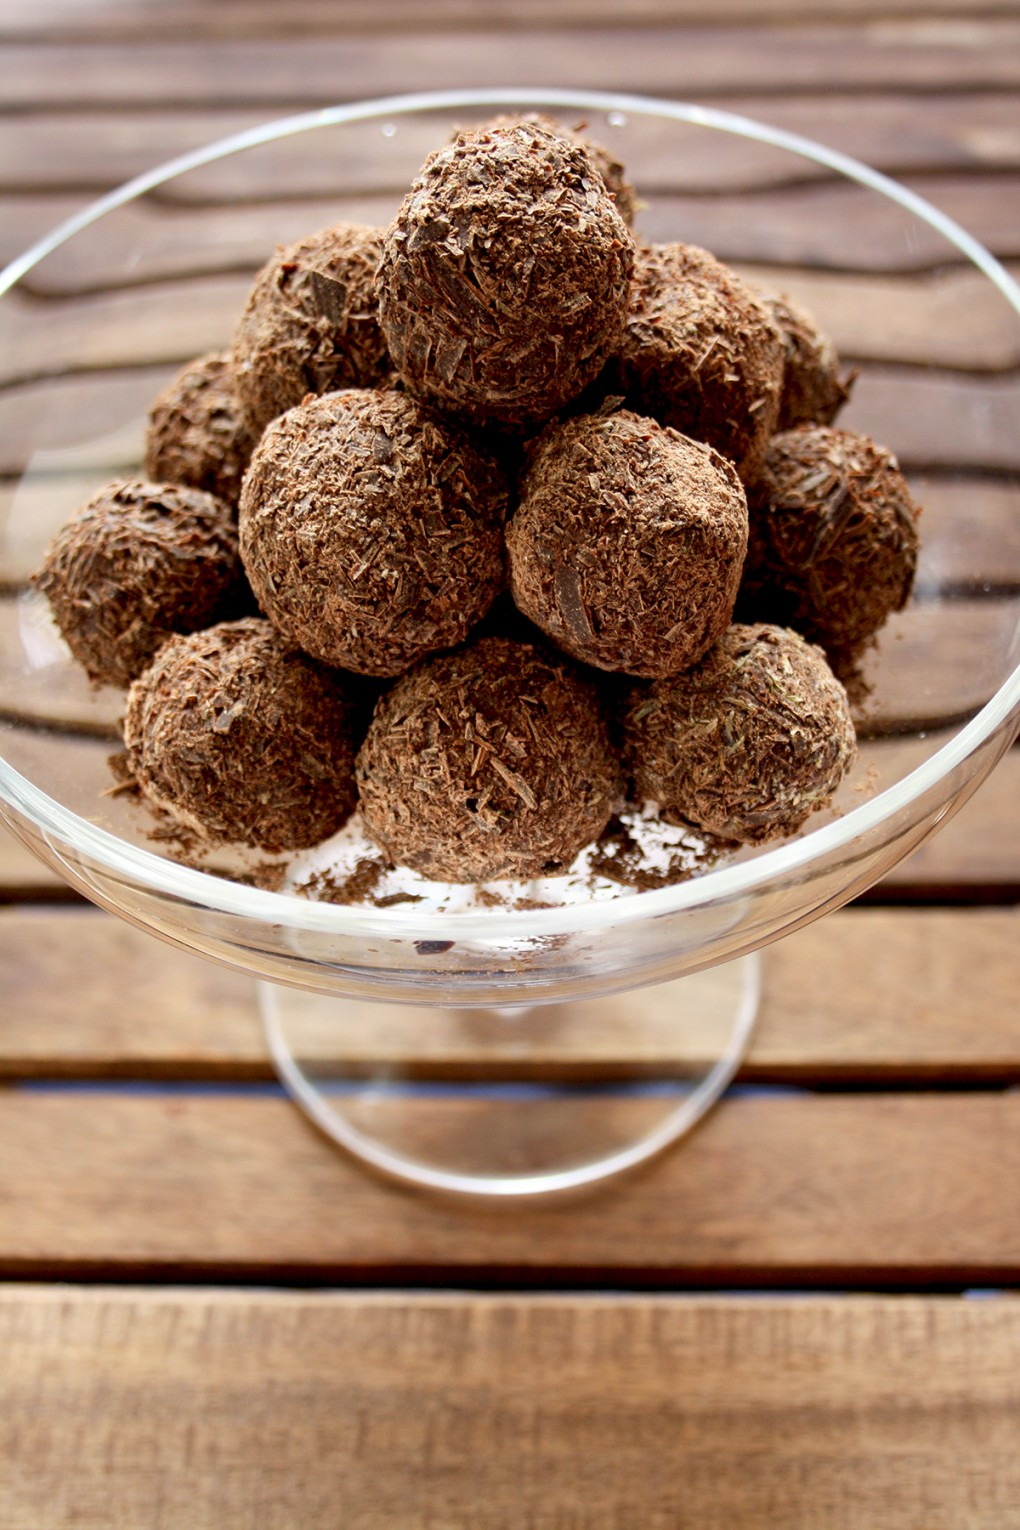 Three Chocolate Truffles Recipes - Dark Chocolate Truffles with Lavender and Honey in a Glass Bowl